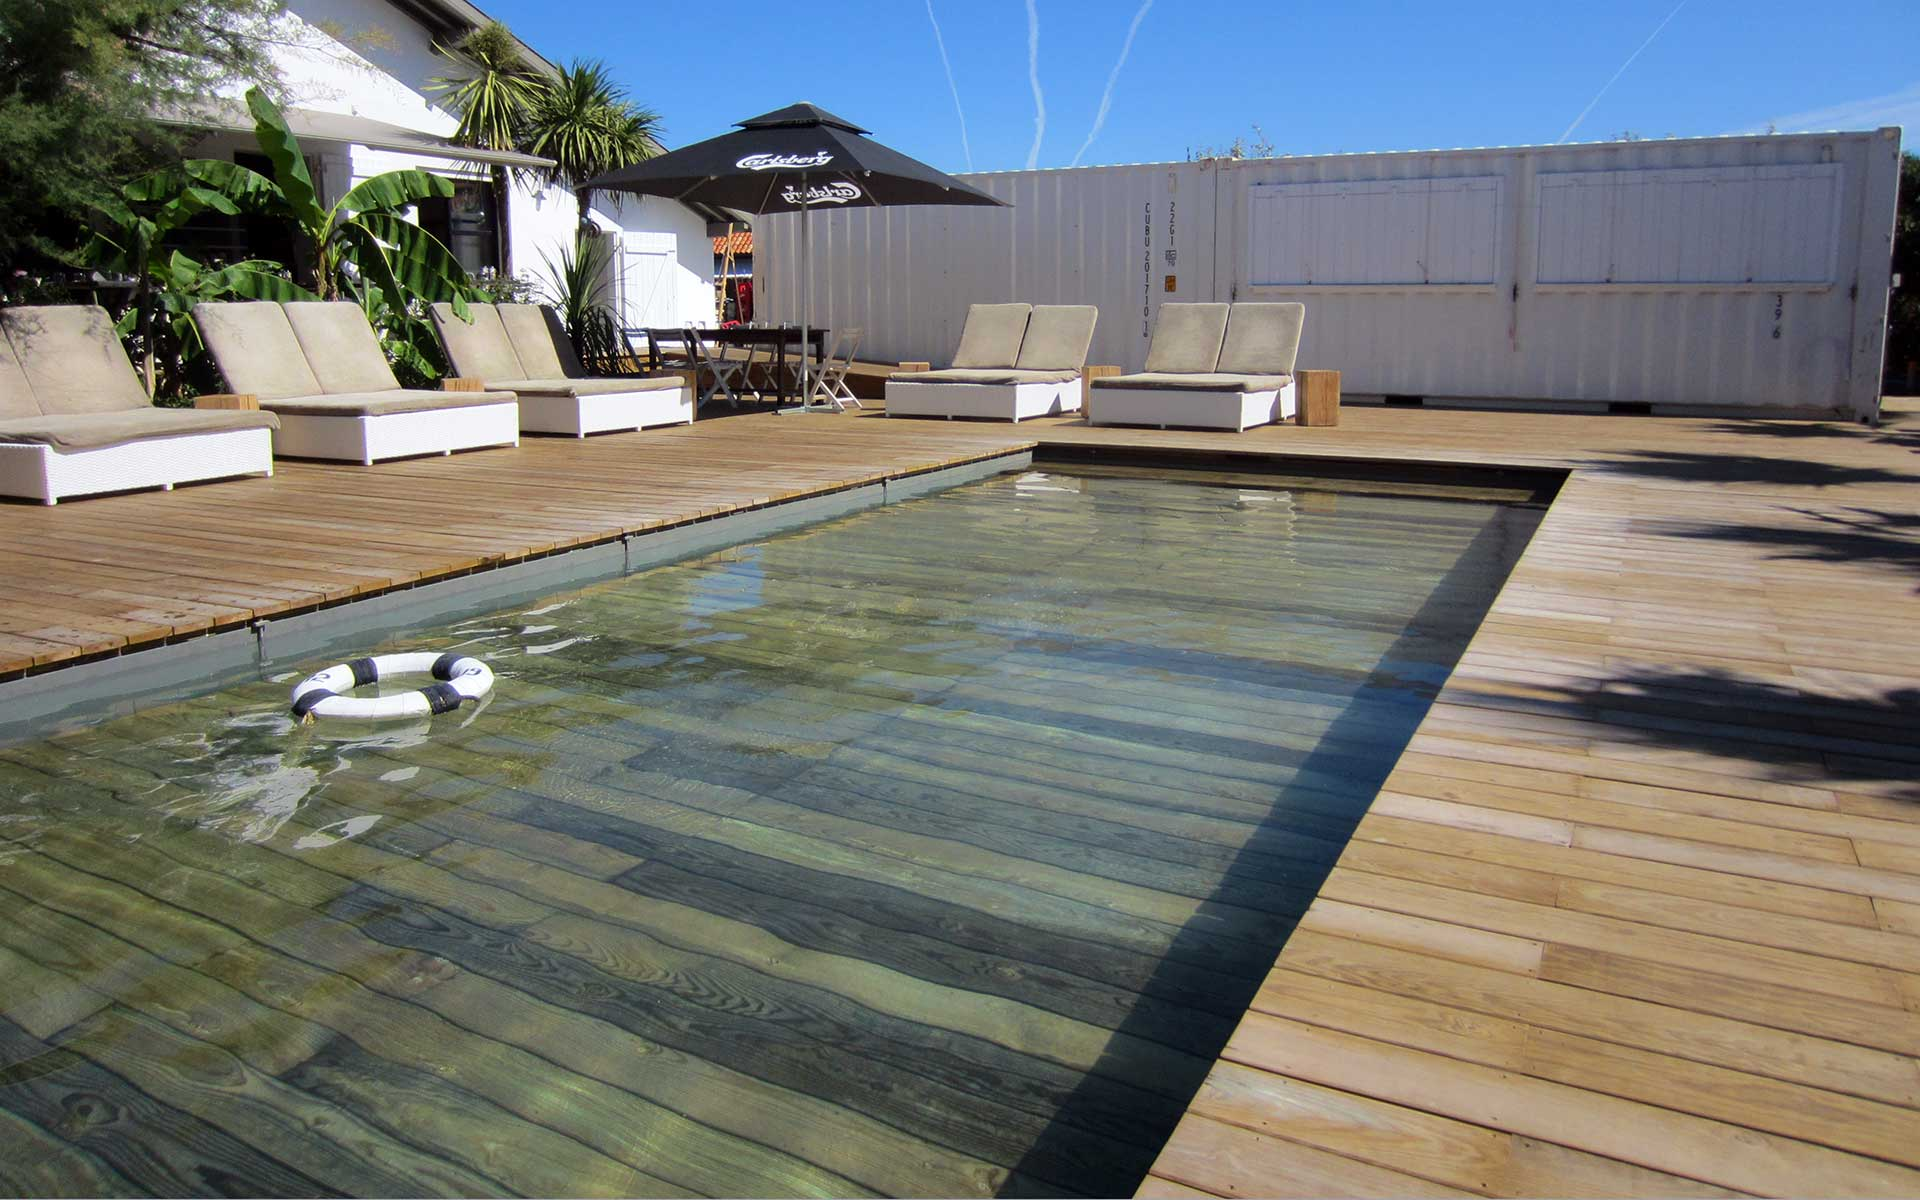 Votre piscine fond mobile les essentiels maison - Photo terrasse piscine ...